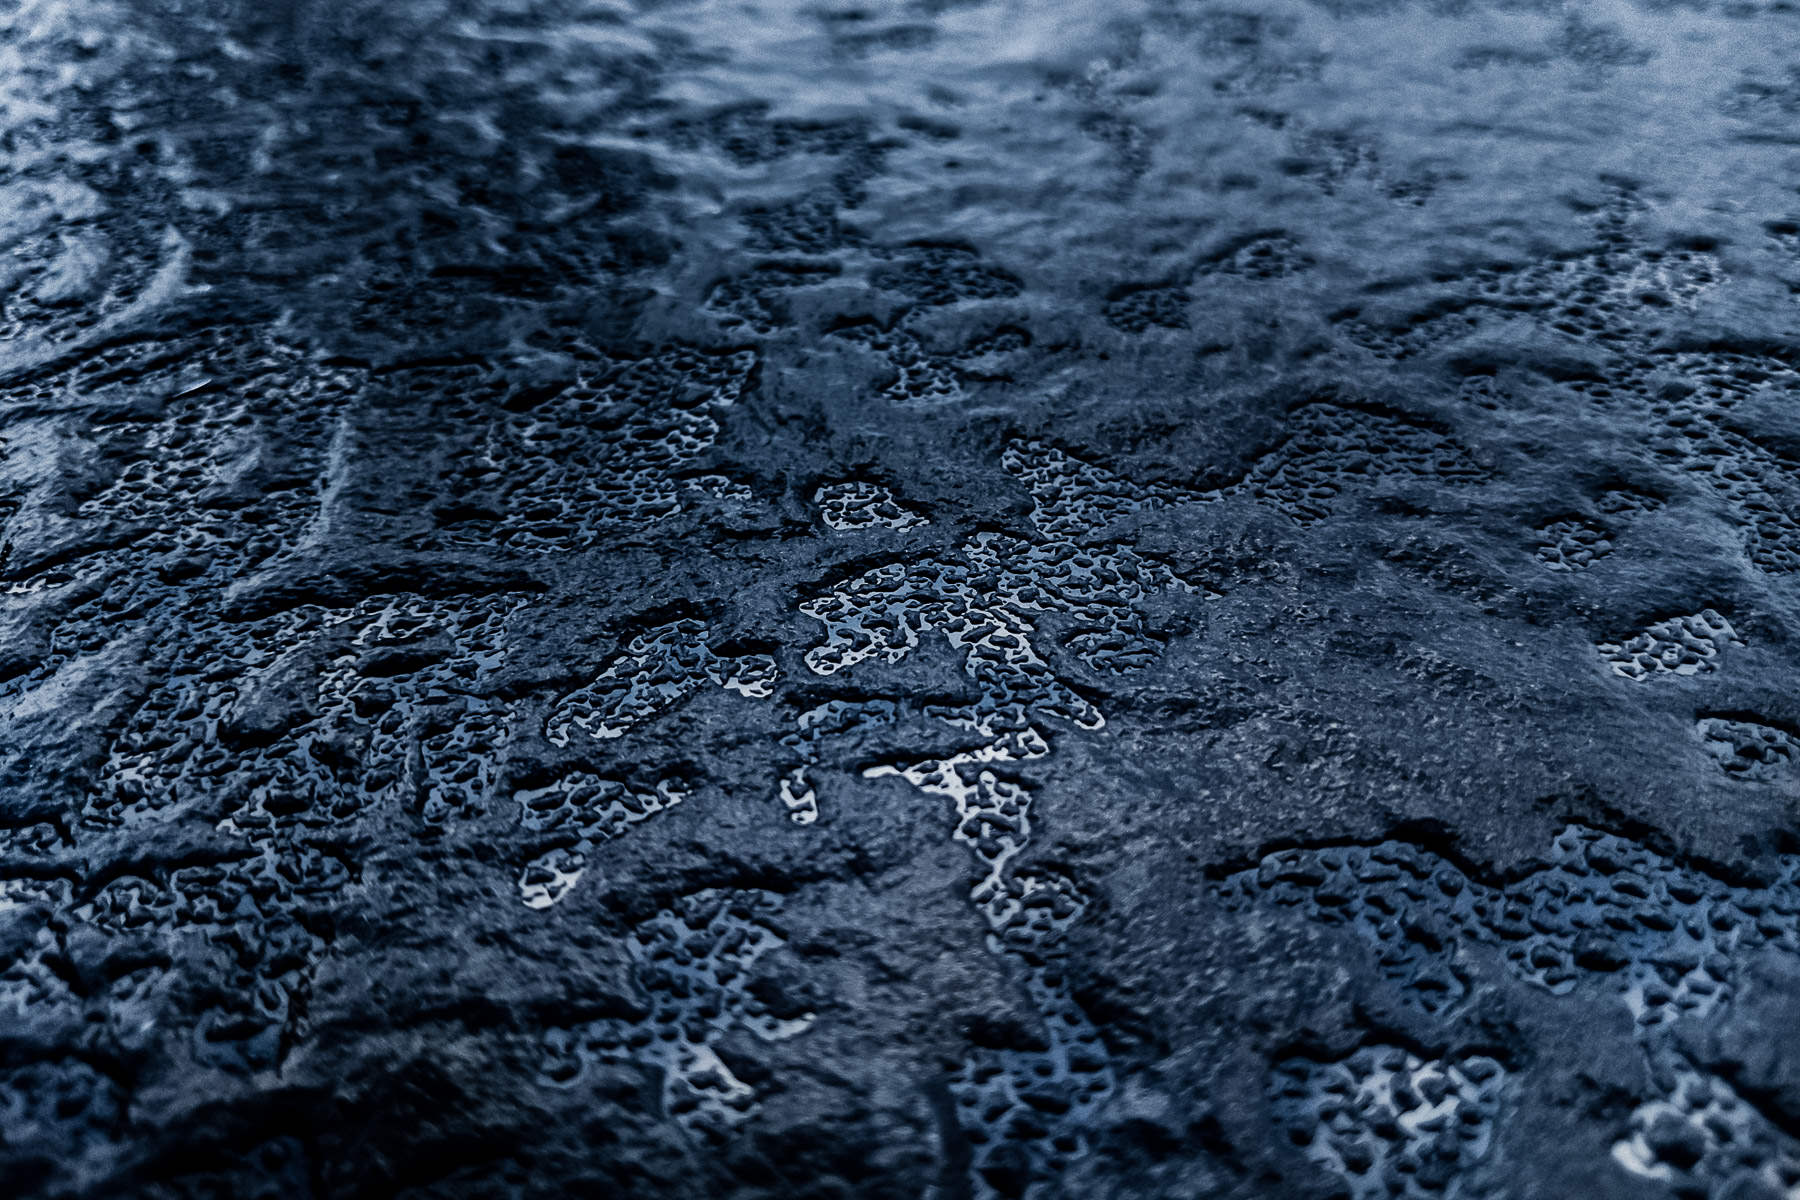 Ice from a freezing rainfall, spotted on a car in The Colony, Texas.